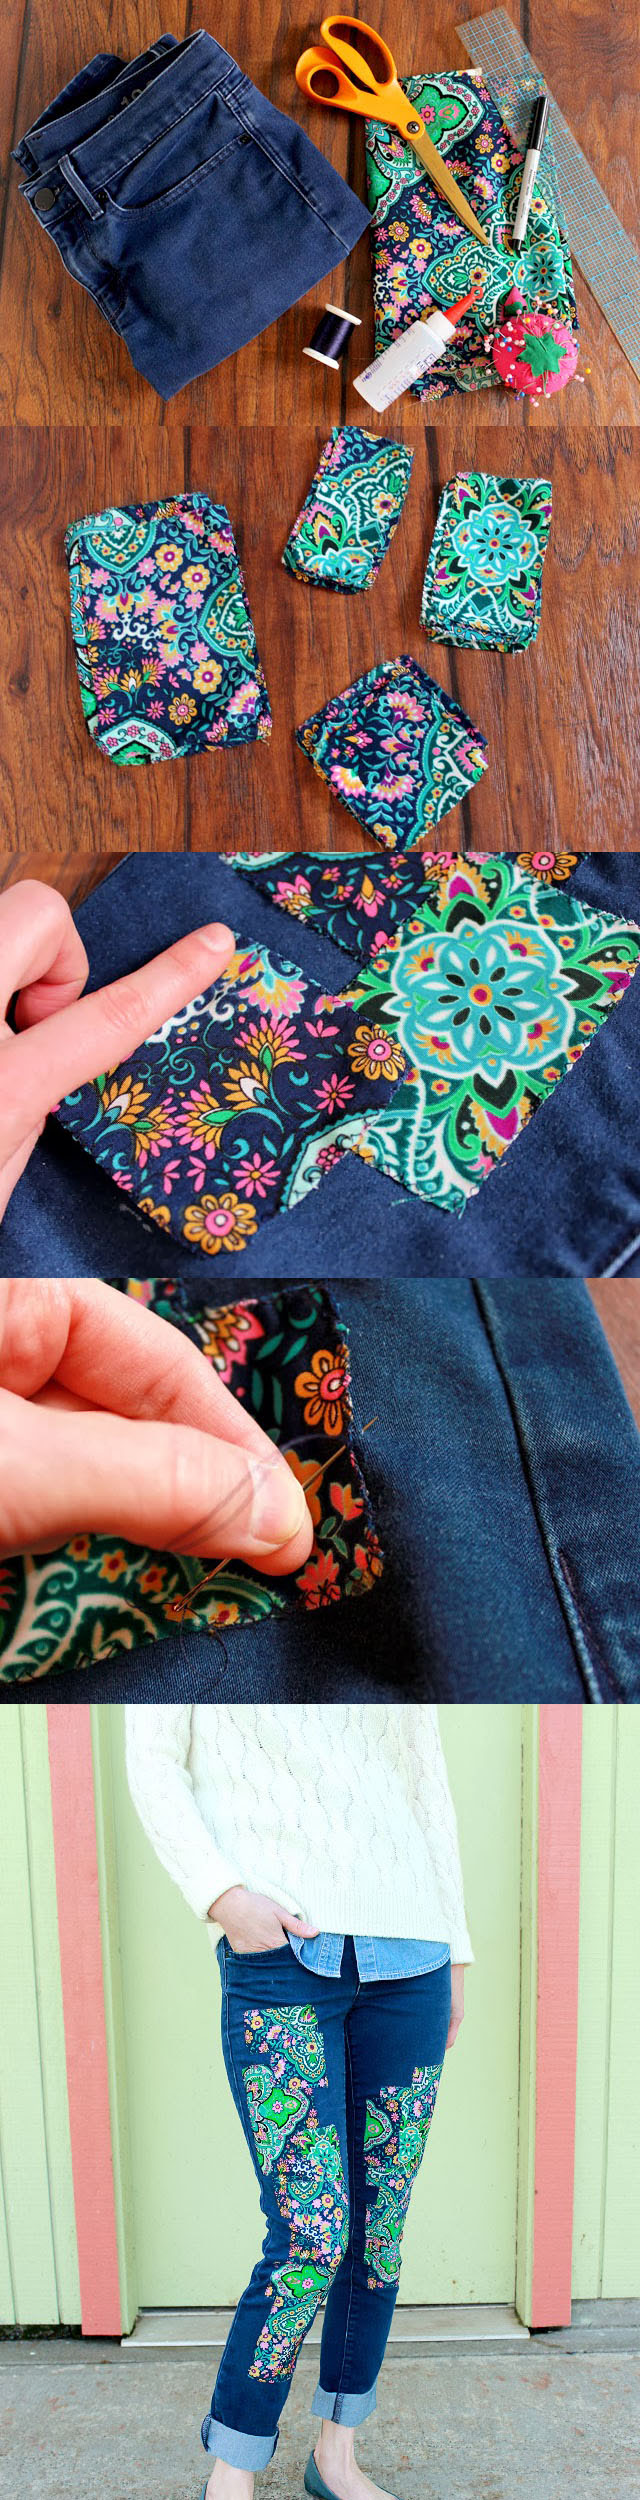 turn old jeans into vest diy reuse old denim jeans8